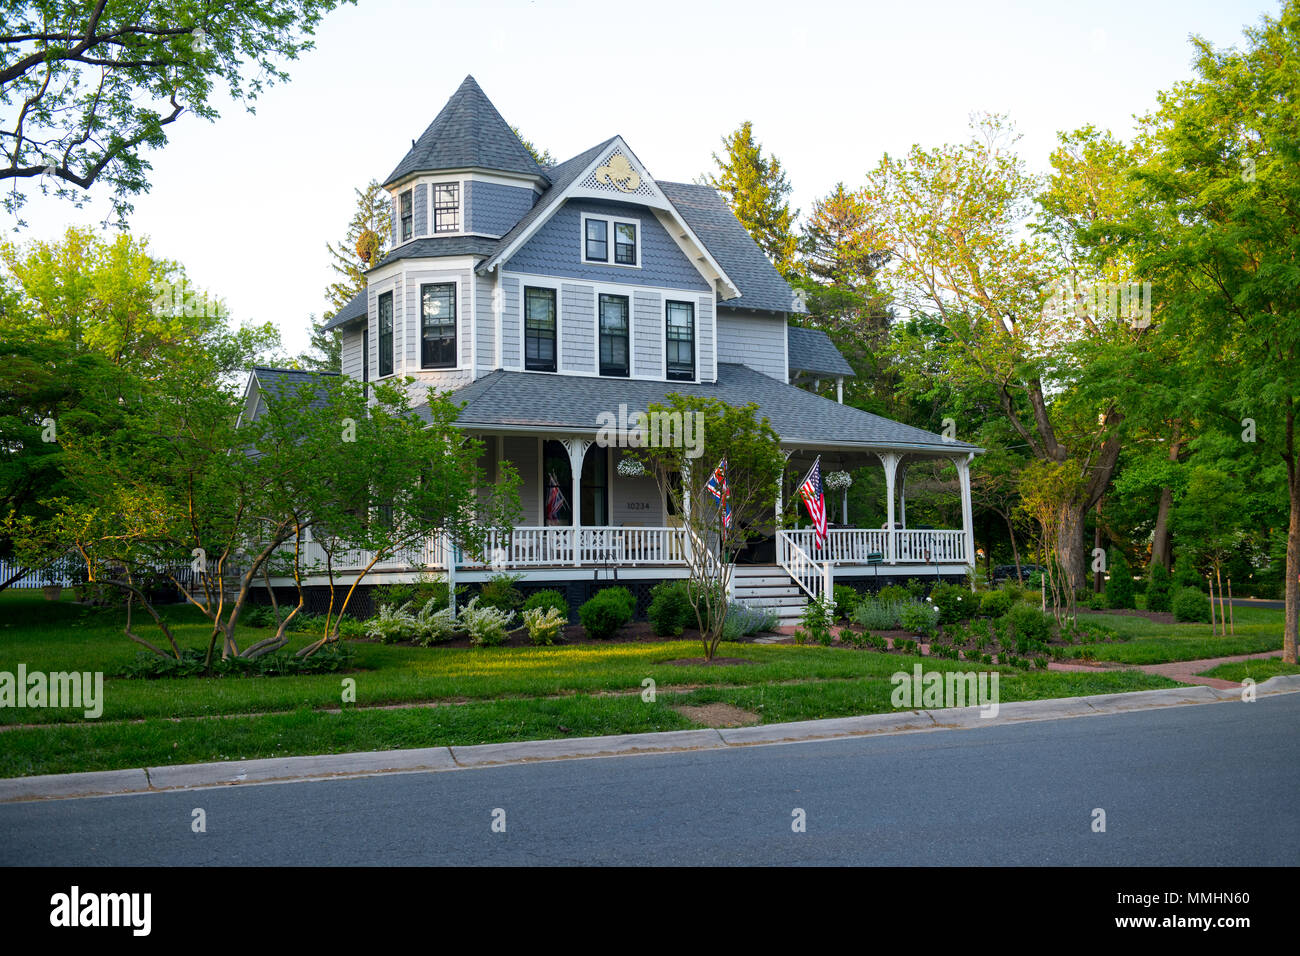 USA Maryland MD Kensington Montgomery County an original Victorian era private home in the old part of town - Stock Image